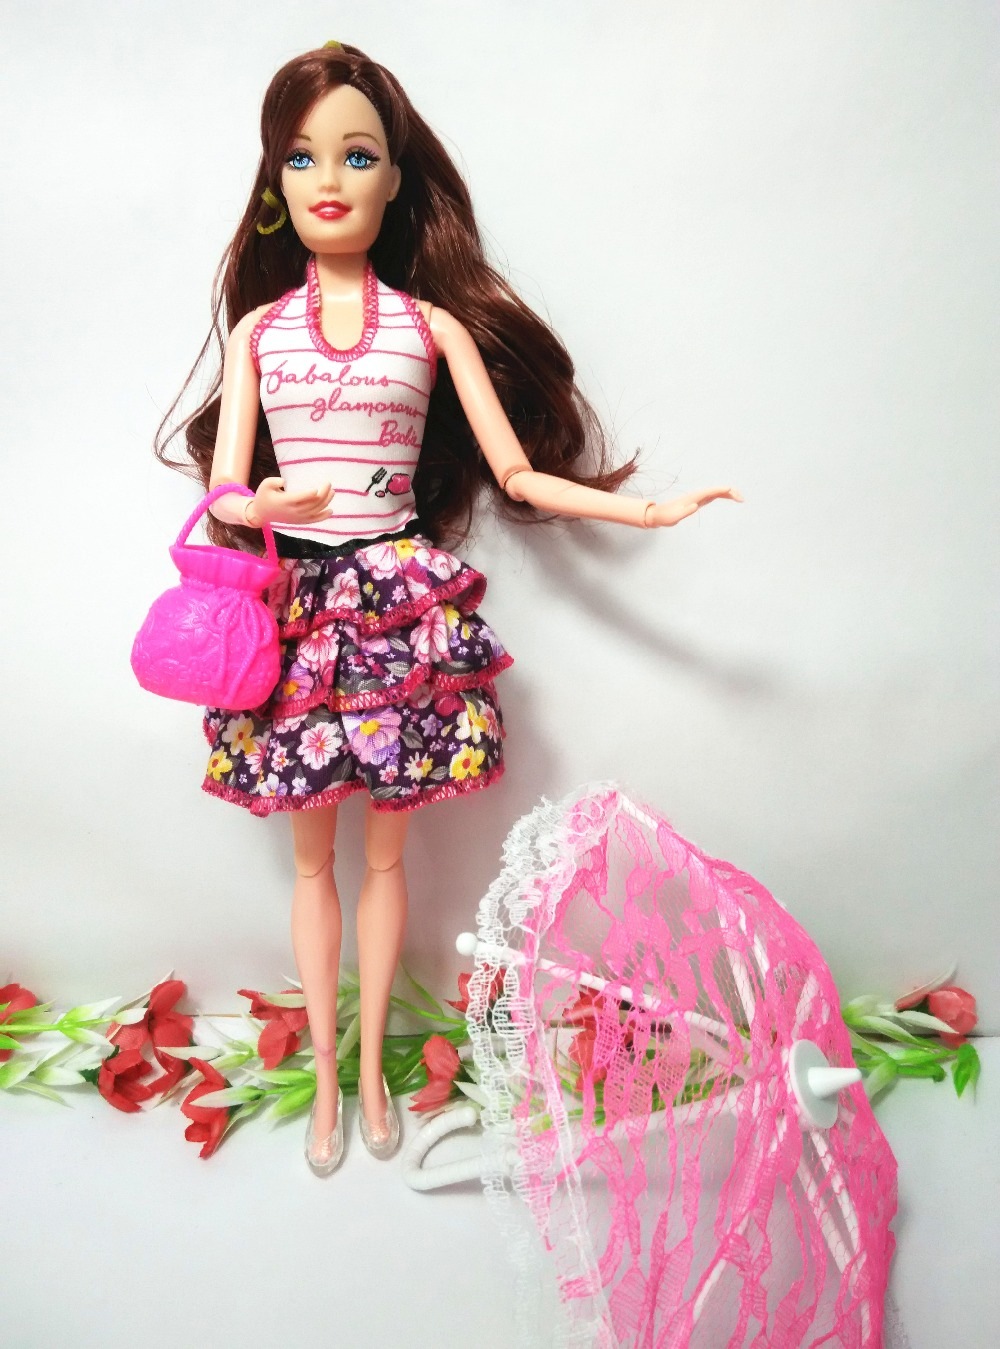 (Vogue Barbie Doll + bag + Toy umbrella) Dolls Mannequin Fashion Moveable Joint Physique Traditional Toys Greatest Reward Equipment For Barbie